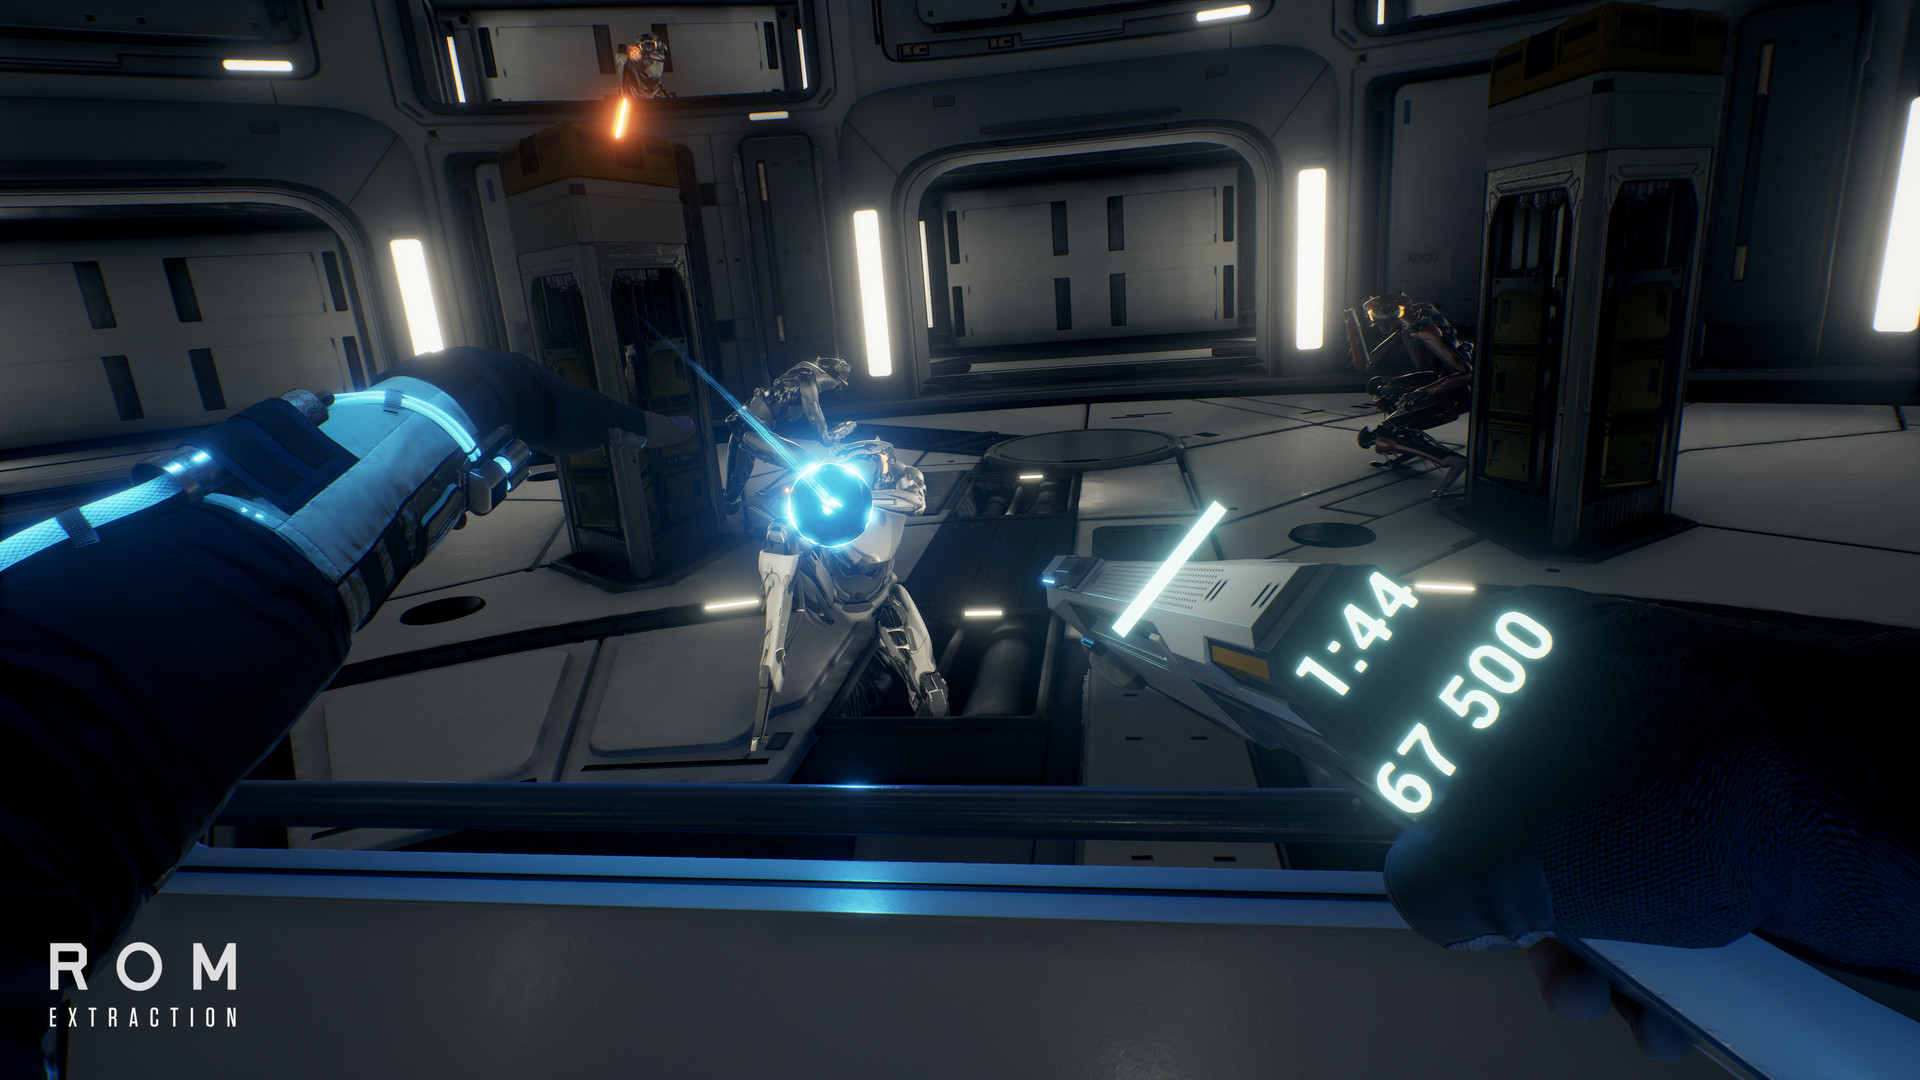 Check out the new ROM: Extraction trailer for HTC Vive